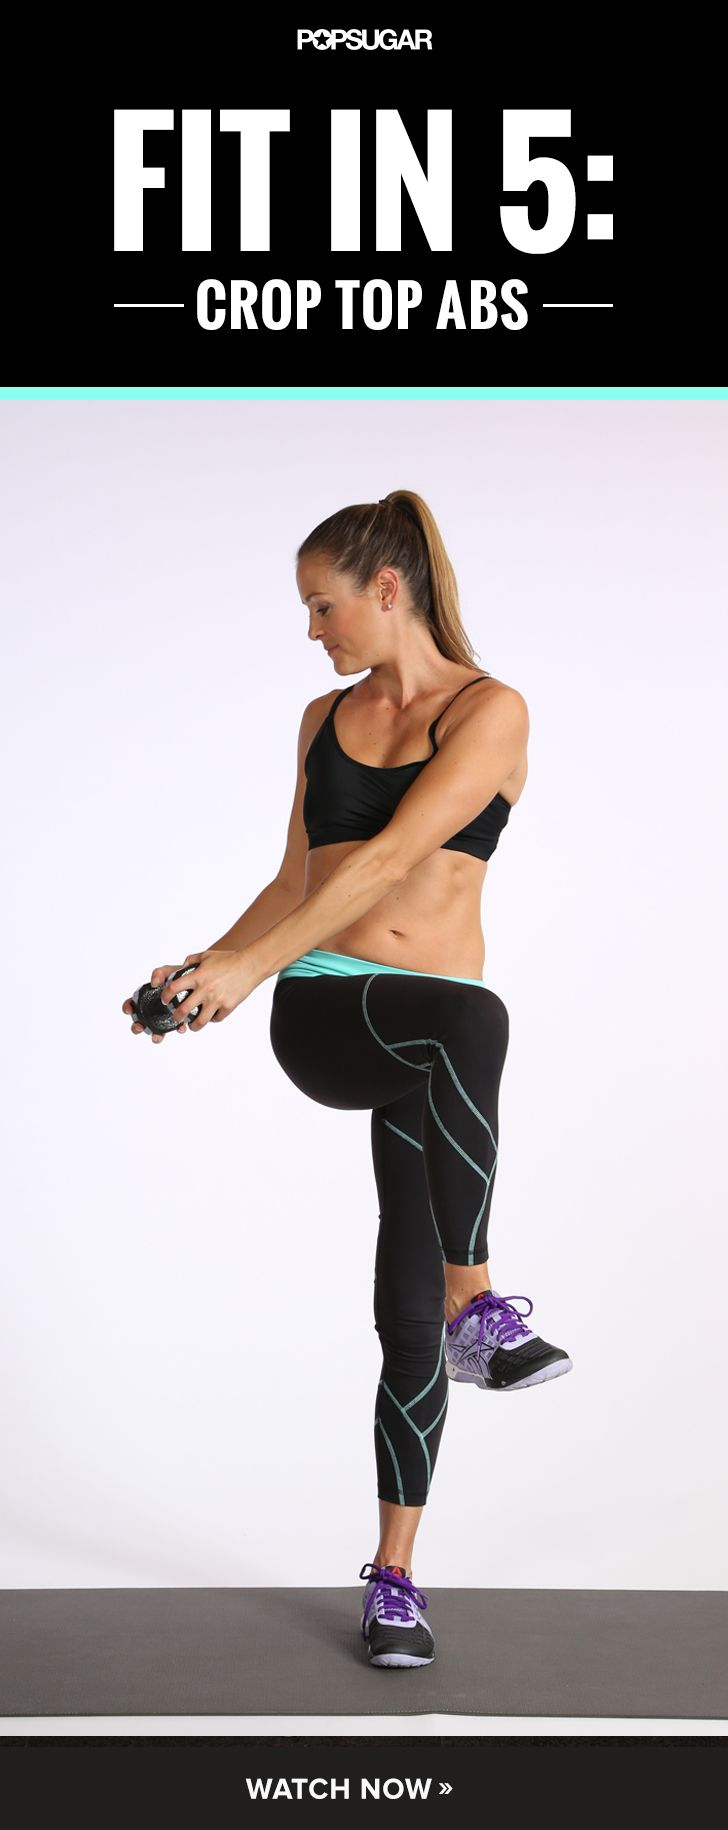 Skip the crunches with this 5-minute ab workout video. All the moves are done standing so its incredibly effective!